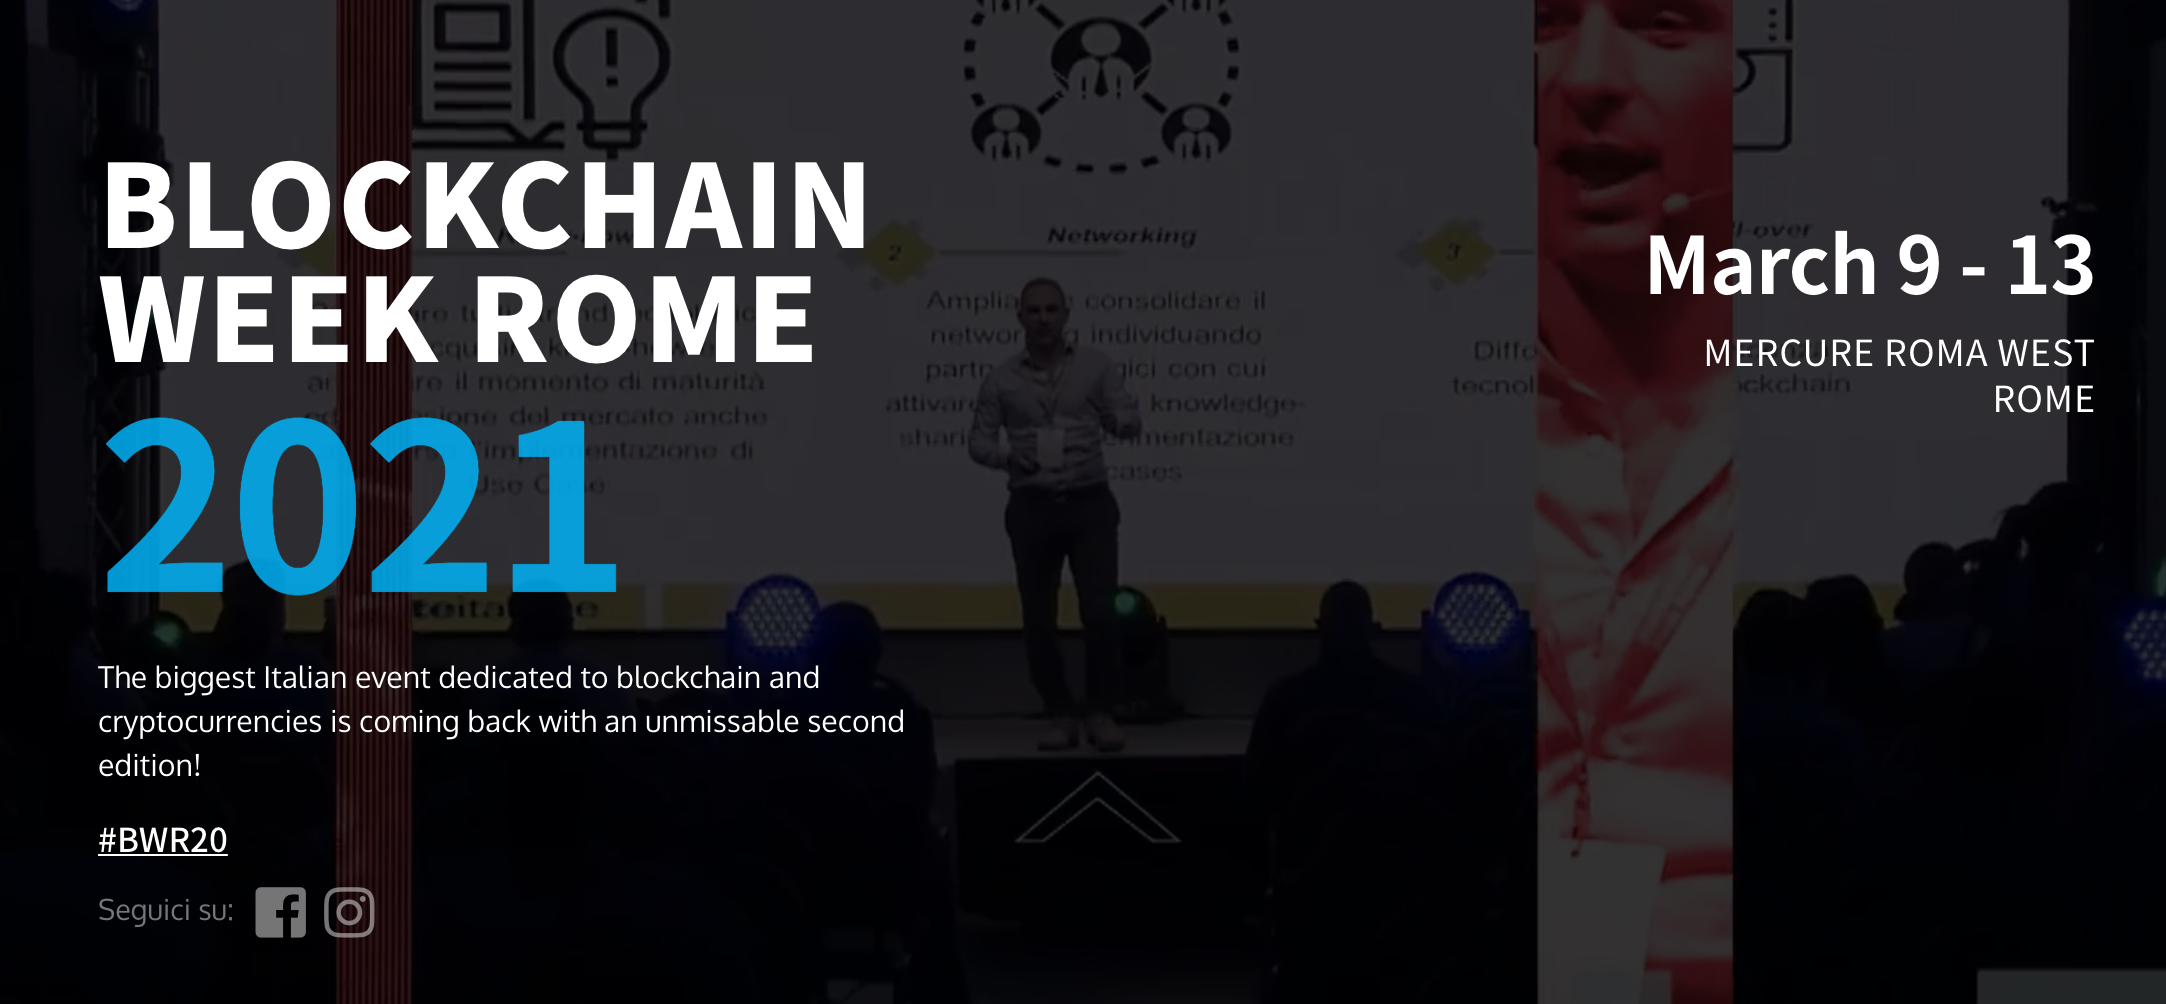 Blockchain Week Rome 2021